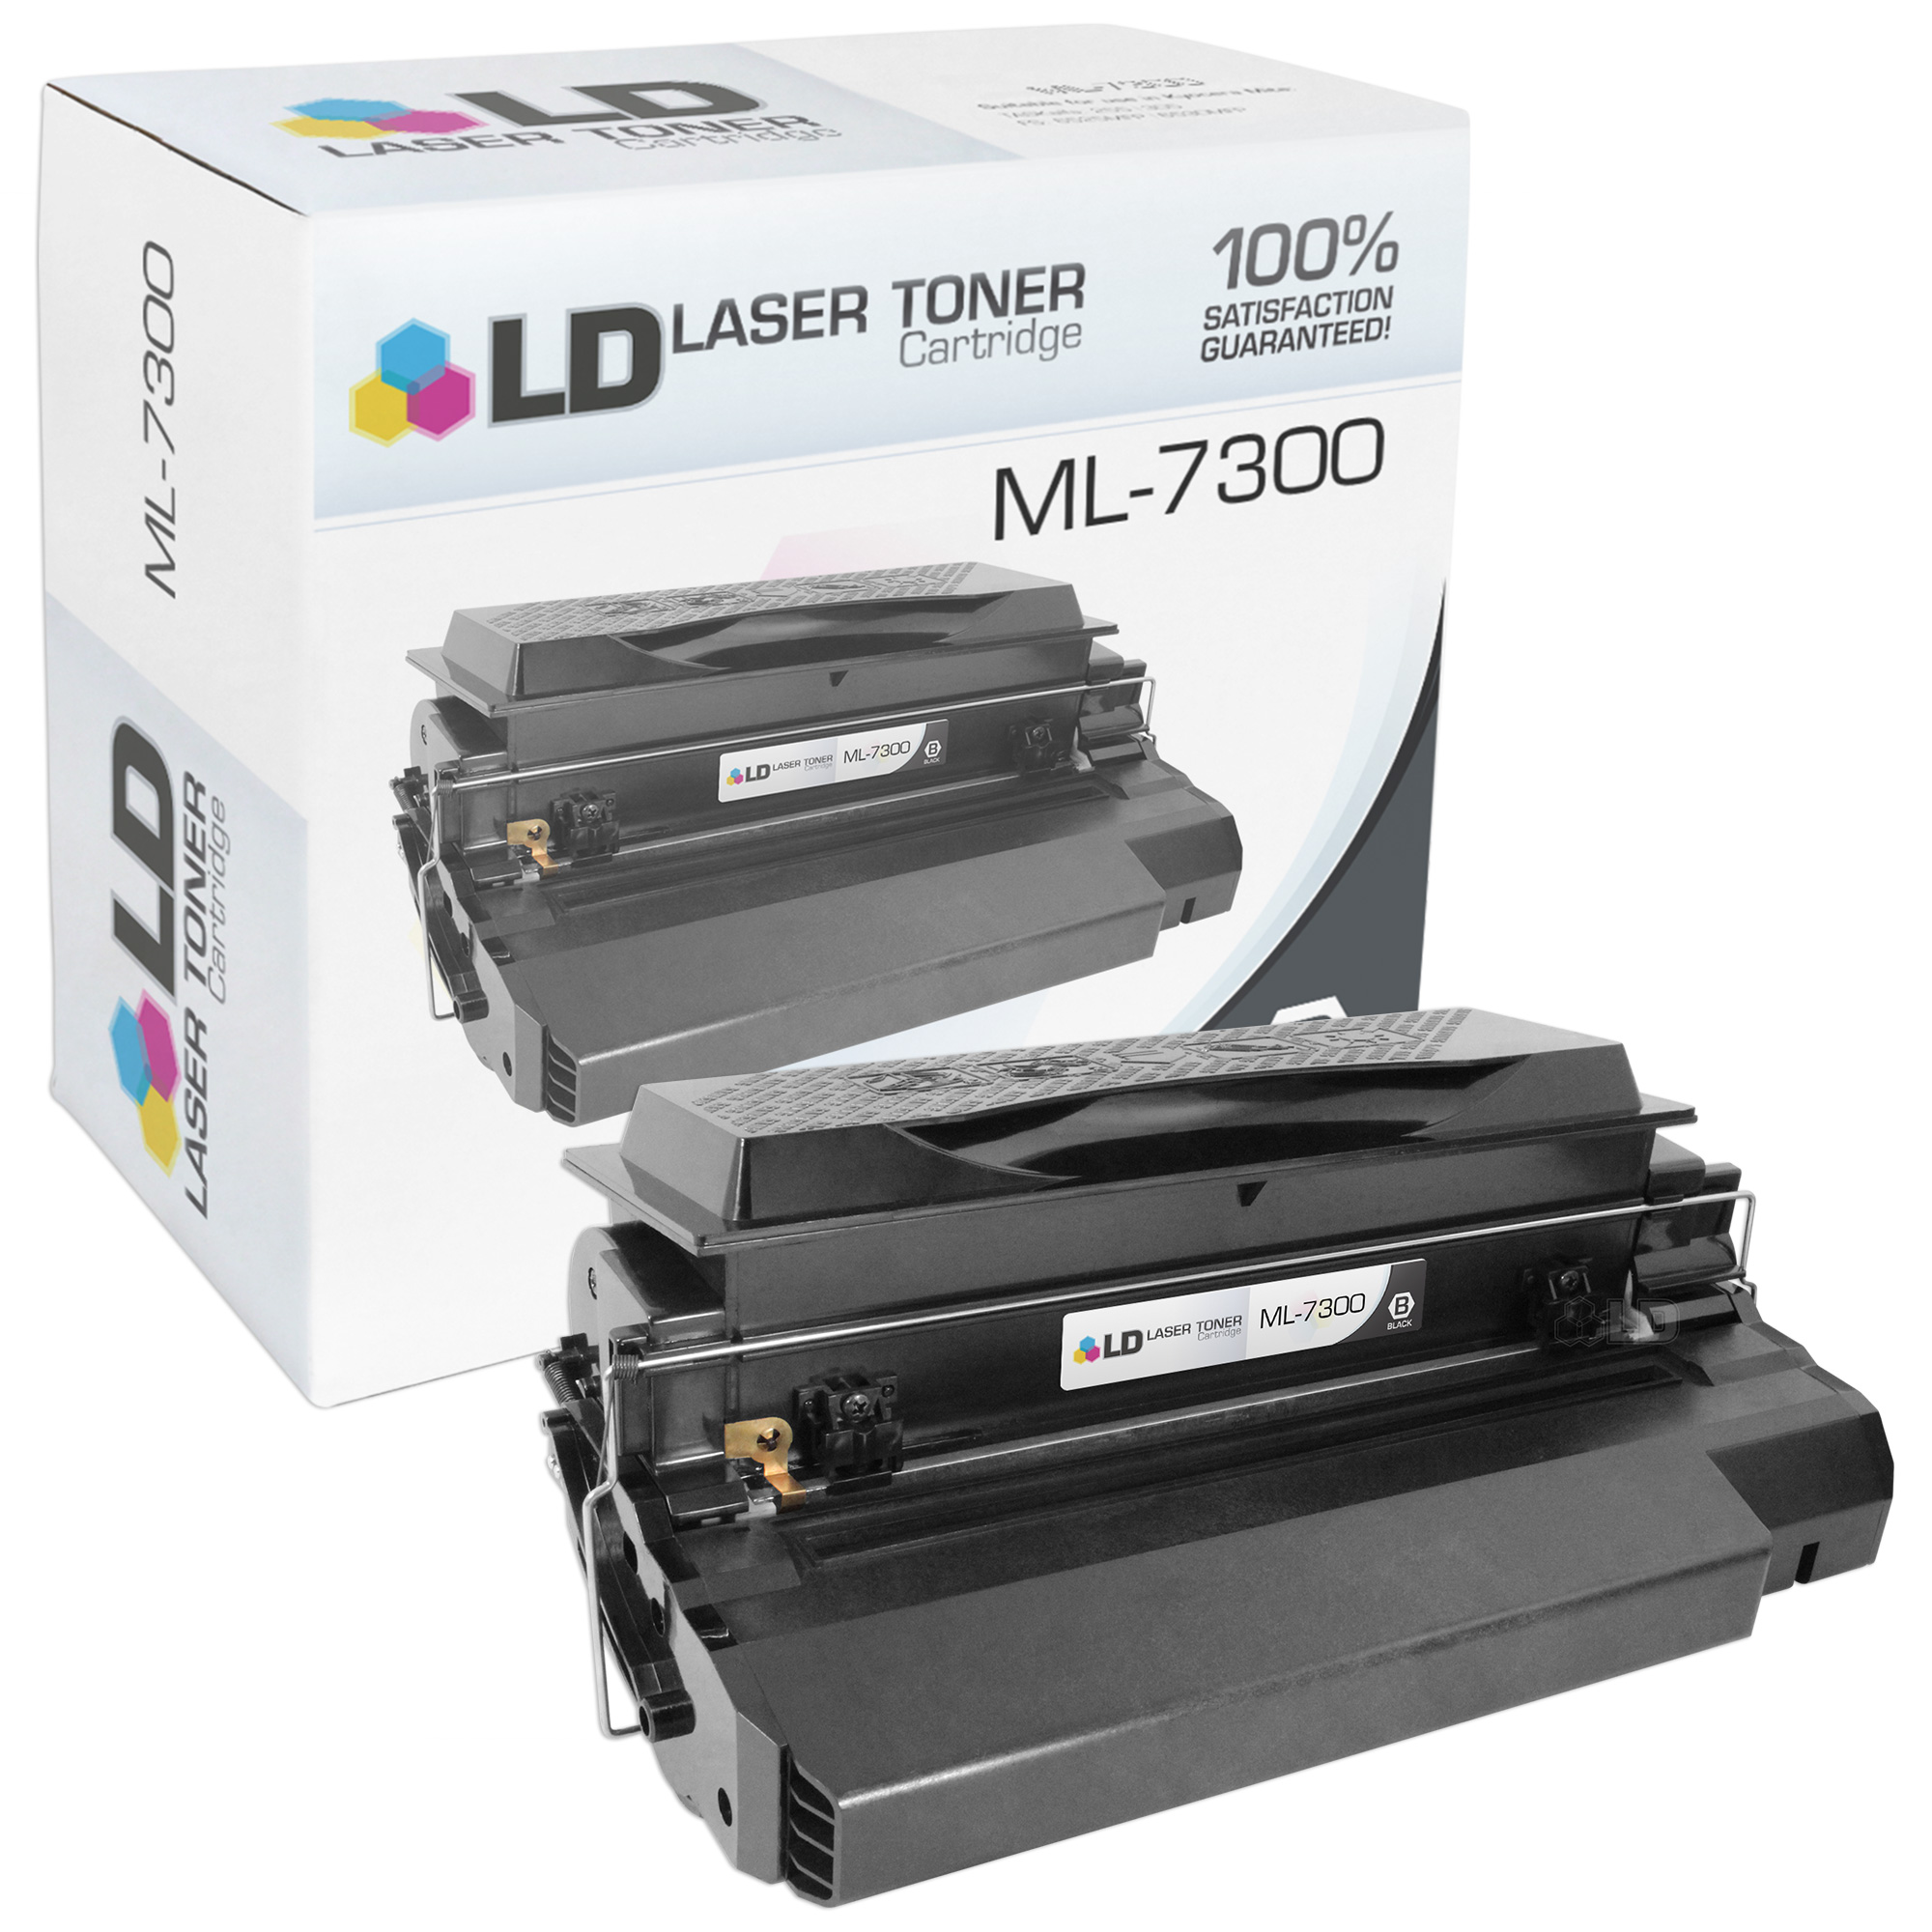 LD Remanufactured Samsung ML-7300DA Black Laser Toner Cartridge for ML-7300, and ML-7300N Printers